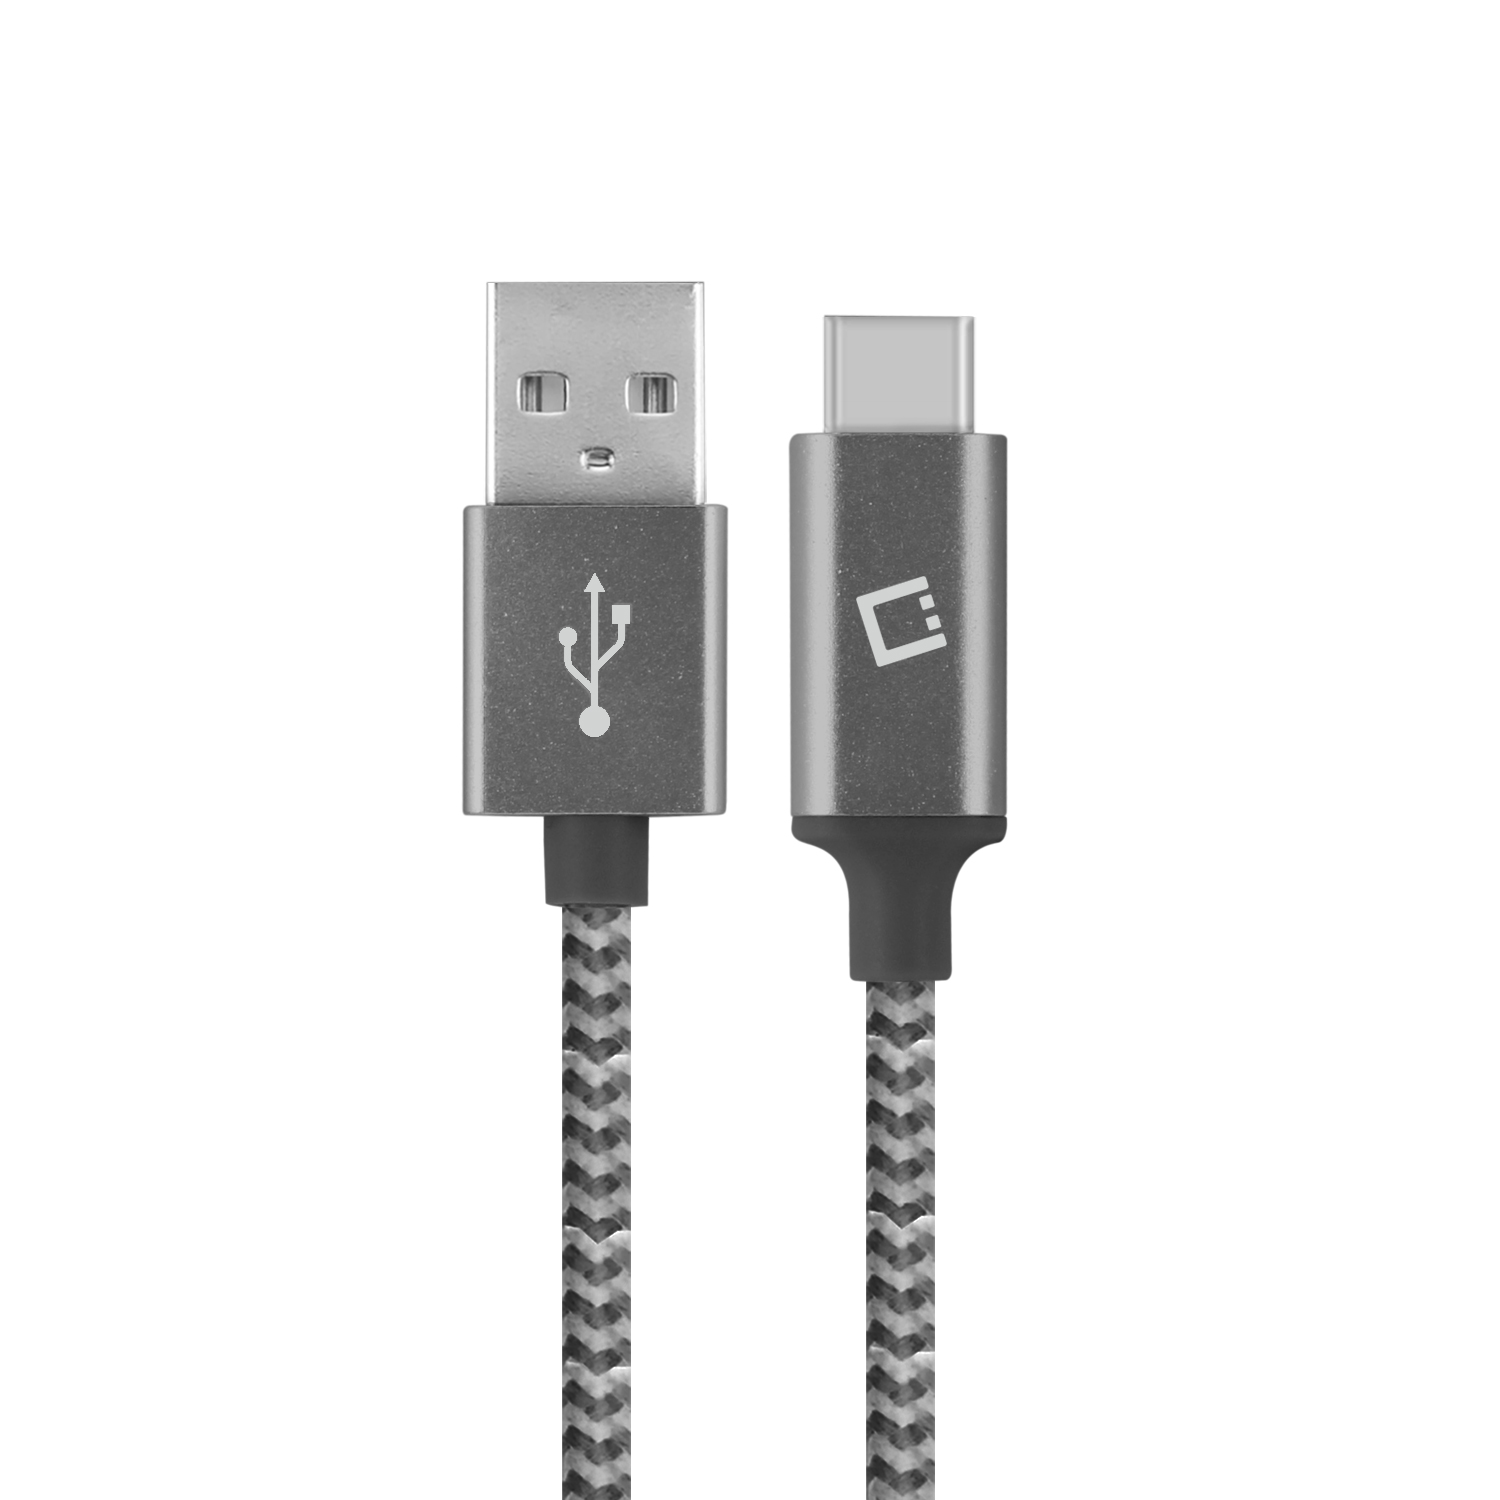 Sony Xperia XZ1 USB Type-C To Type-A Braided Data Power Cable Black 4ft Round